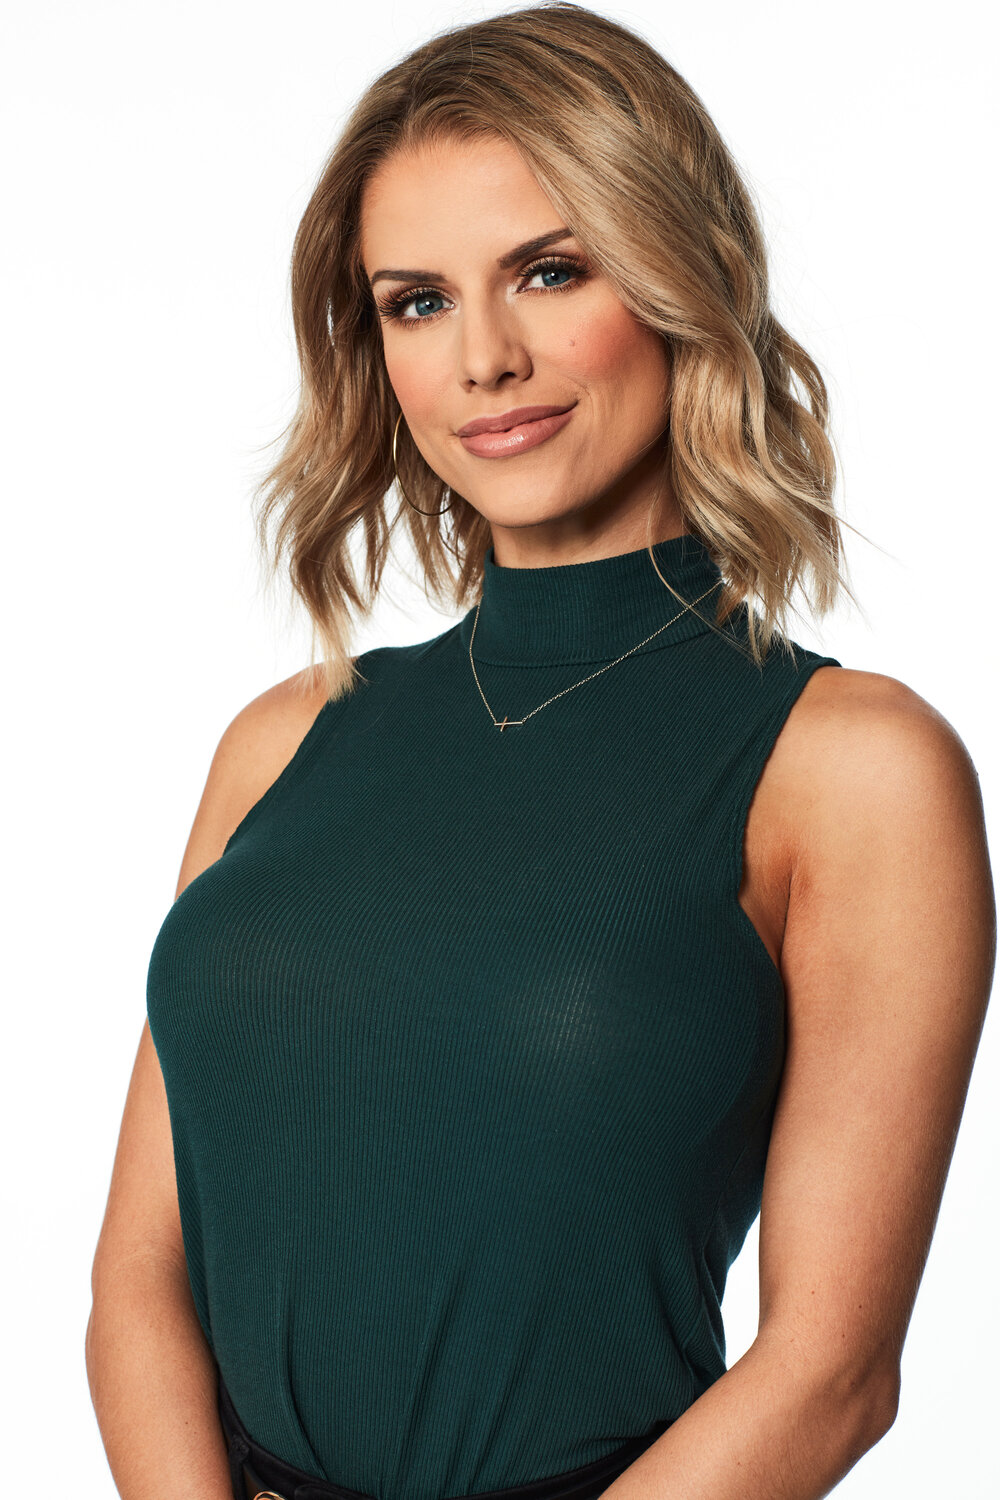 Courtney Perry - Bachelor 24 - *Sleuthing Spoilers* Courtney